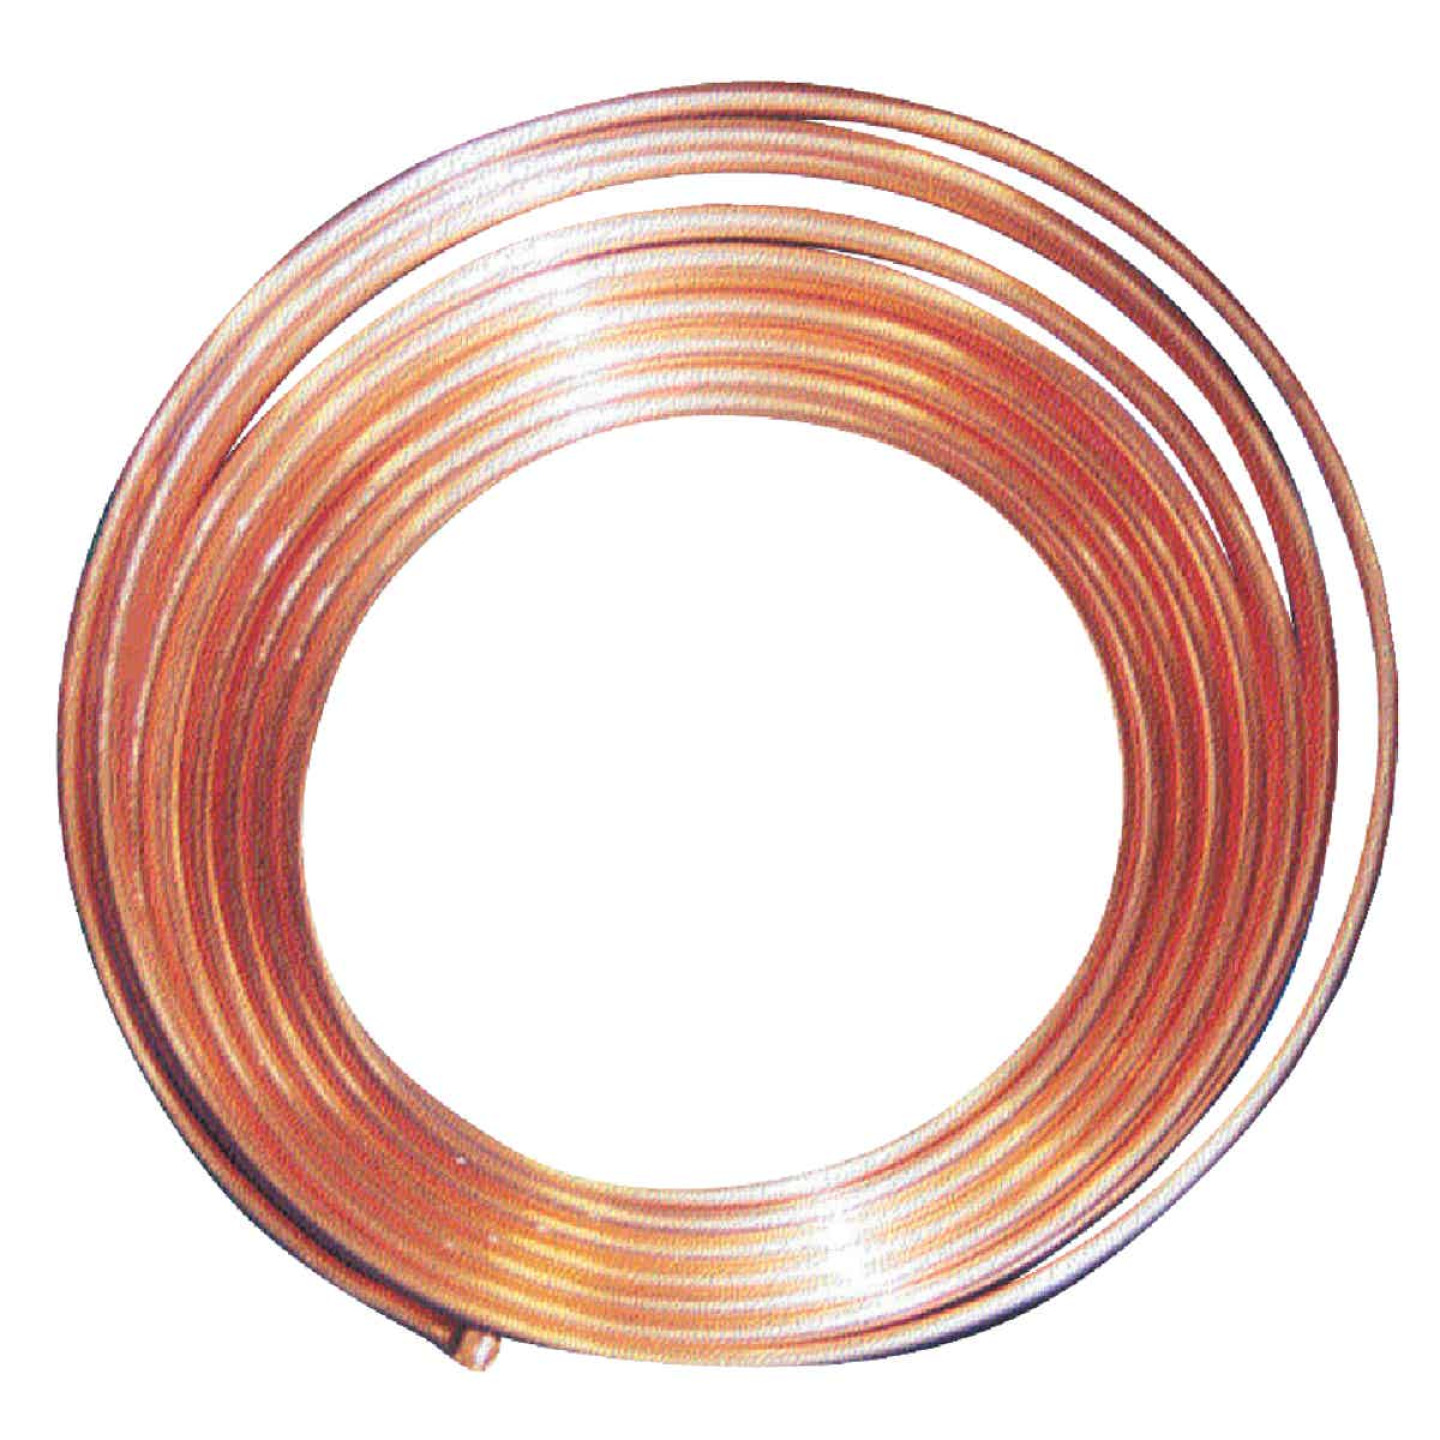 Mueller Streamline 3/8 In. OD x 20 Ft. Refrigerator Copper Tubing Image 1